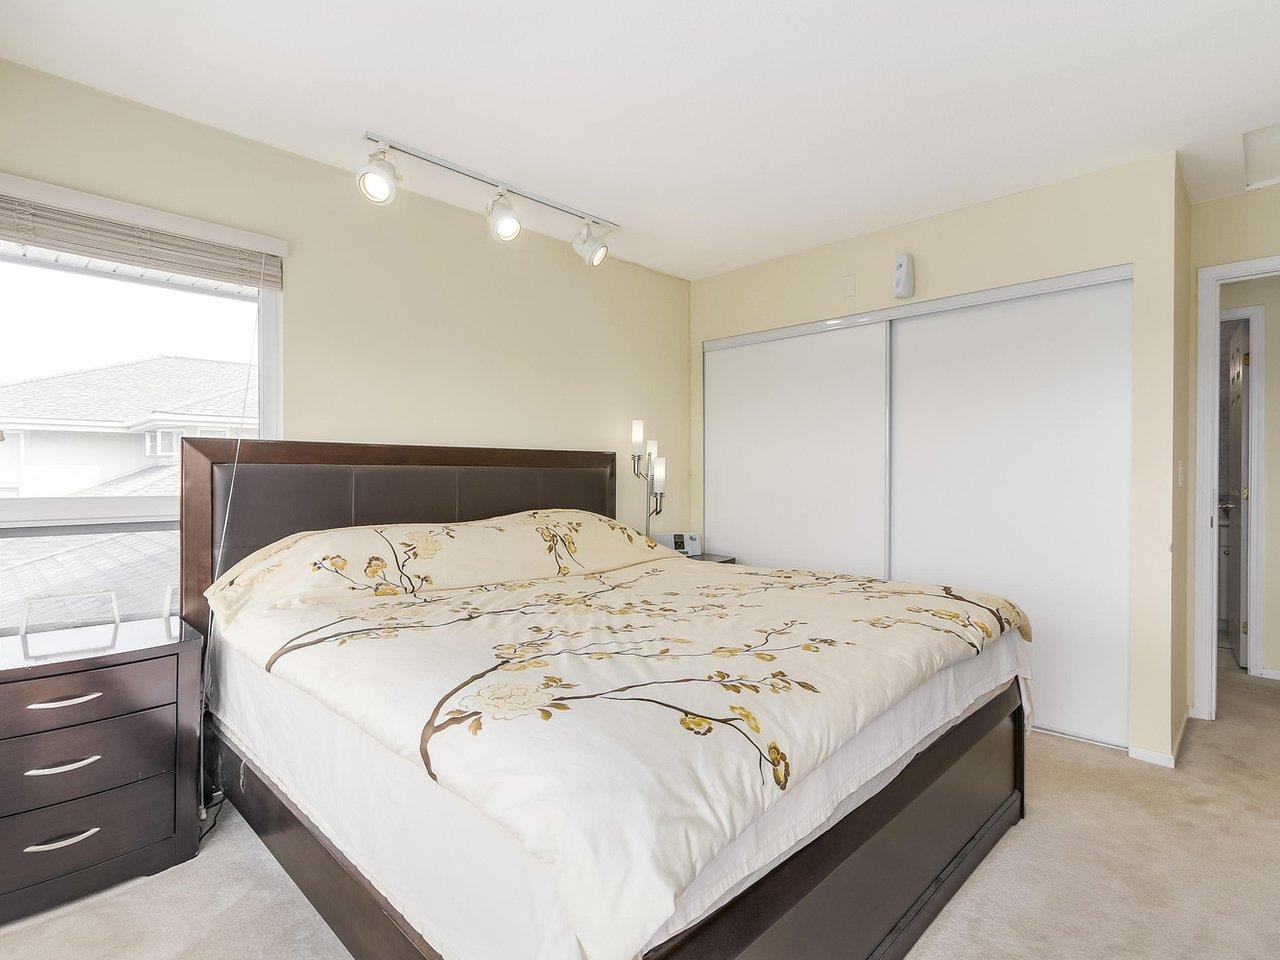 "Photo 11: 405 2965 HORLEY Street in Vancouver: Collingwood VE Condo for sale in ""CHERRY HILL"" (Vancouver East)  : MLS® # R2196474"